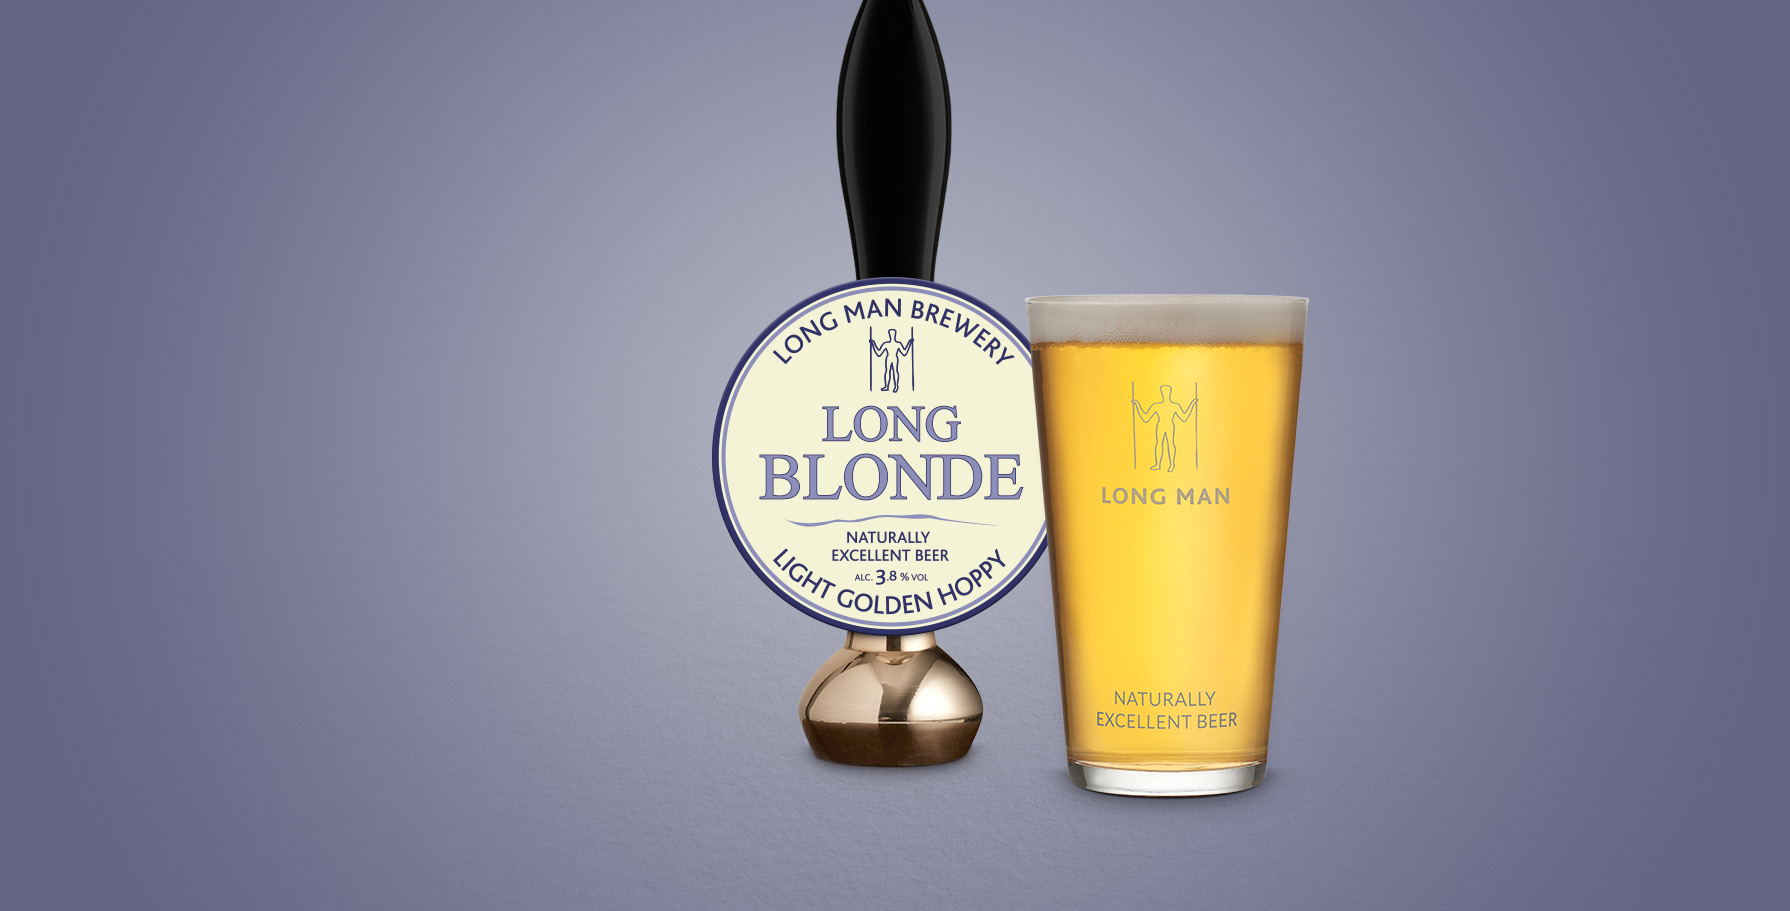 Long Blonde – Long Man Brewery